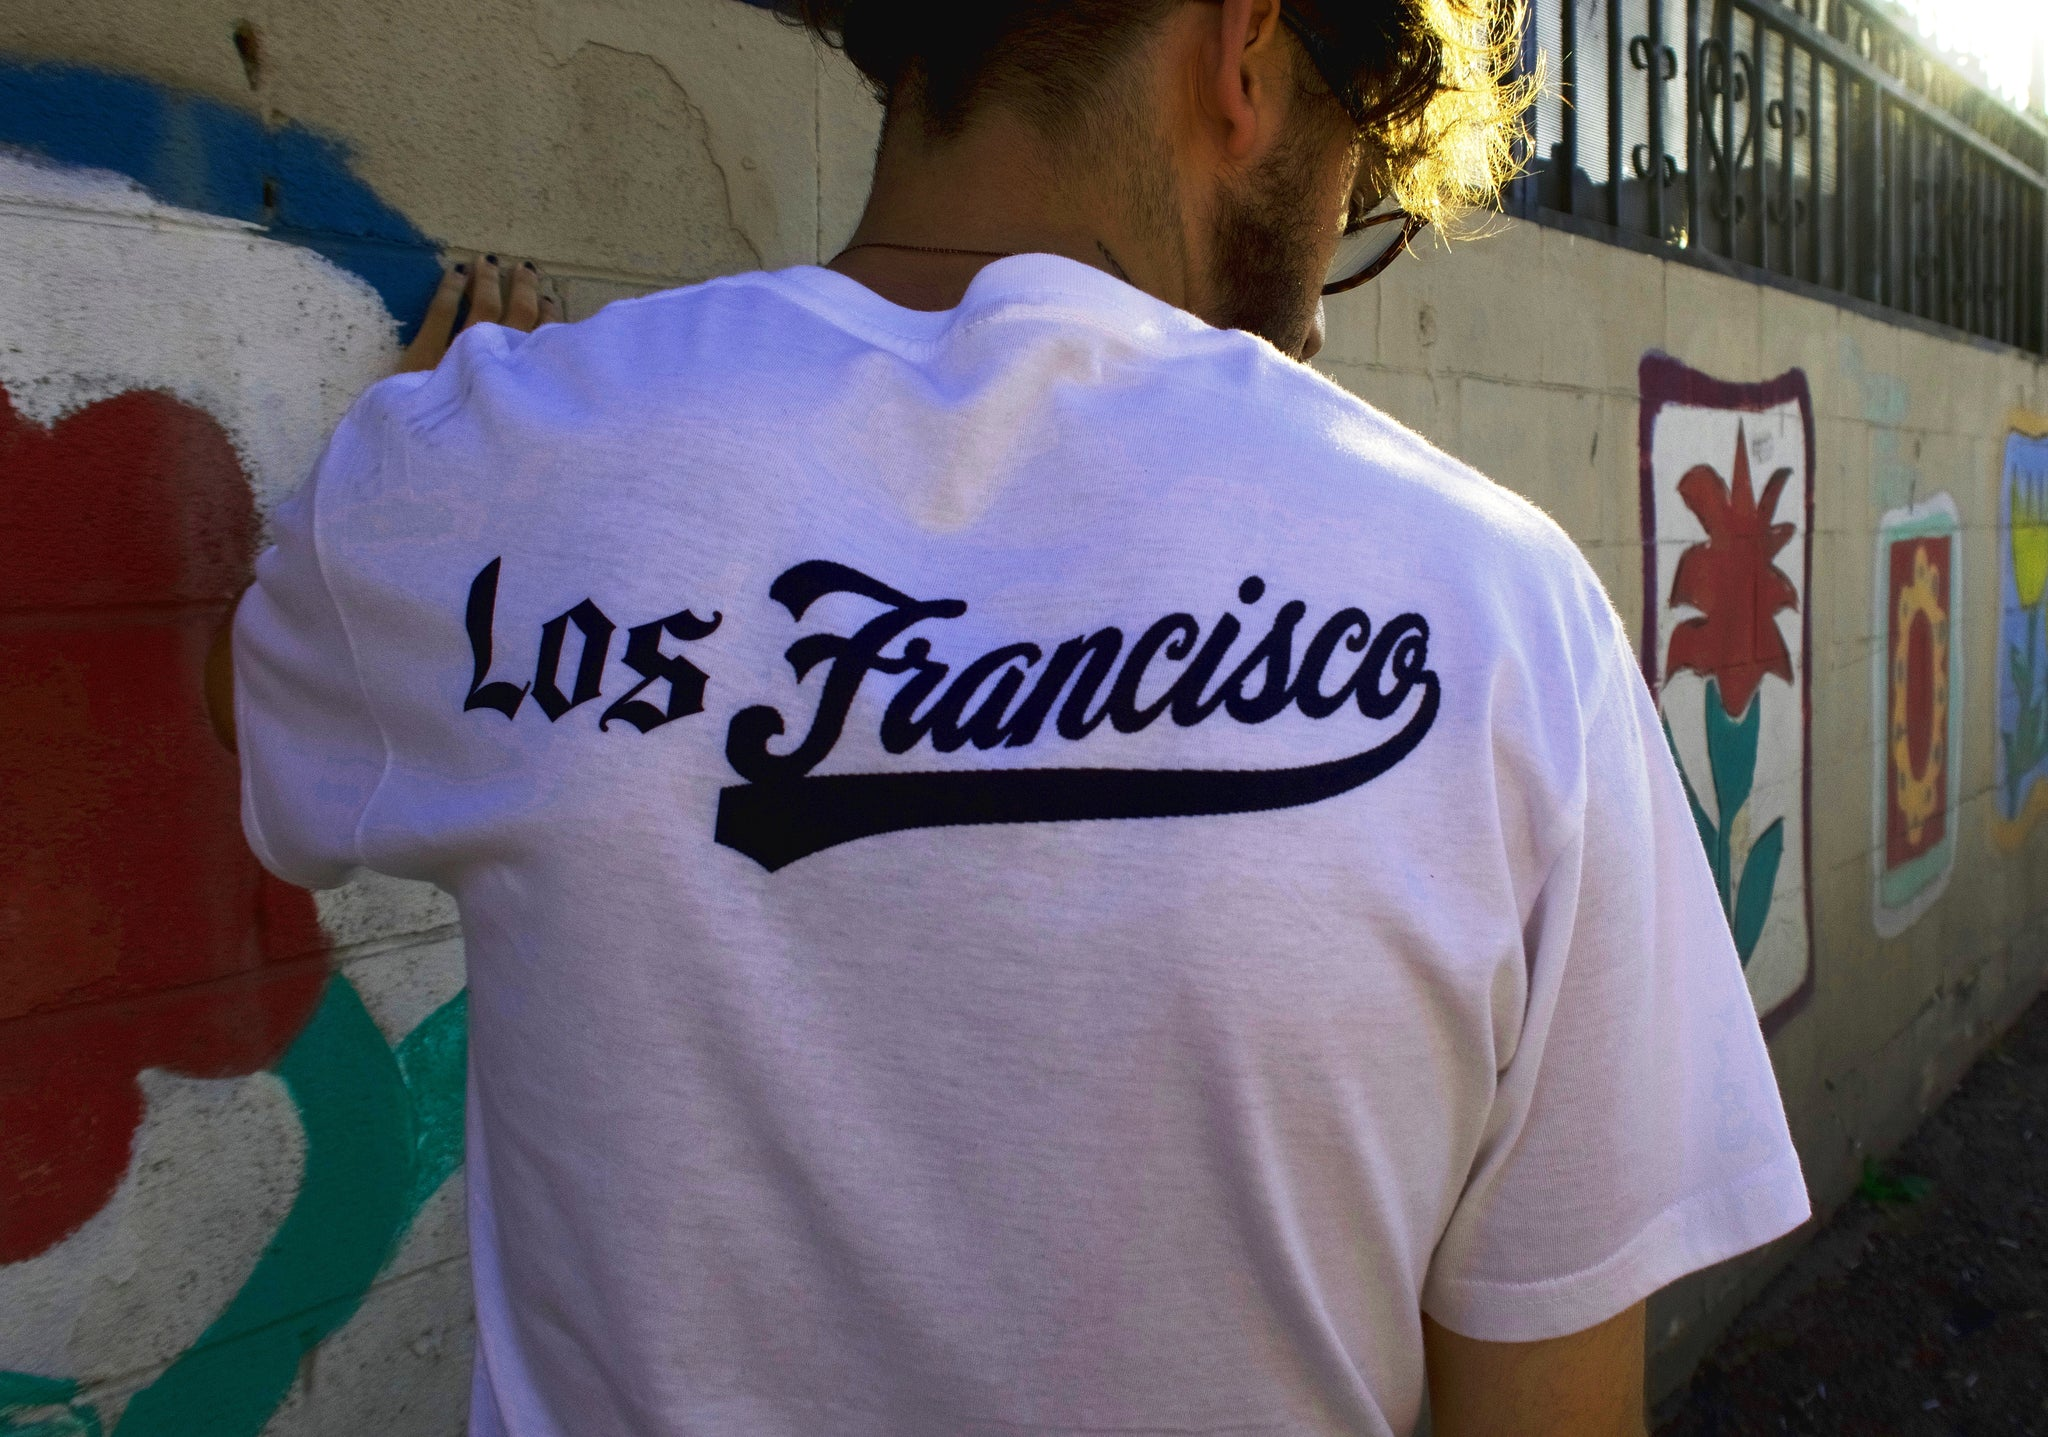 san angeles los francisco tshirt city mash up